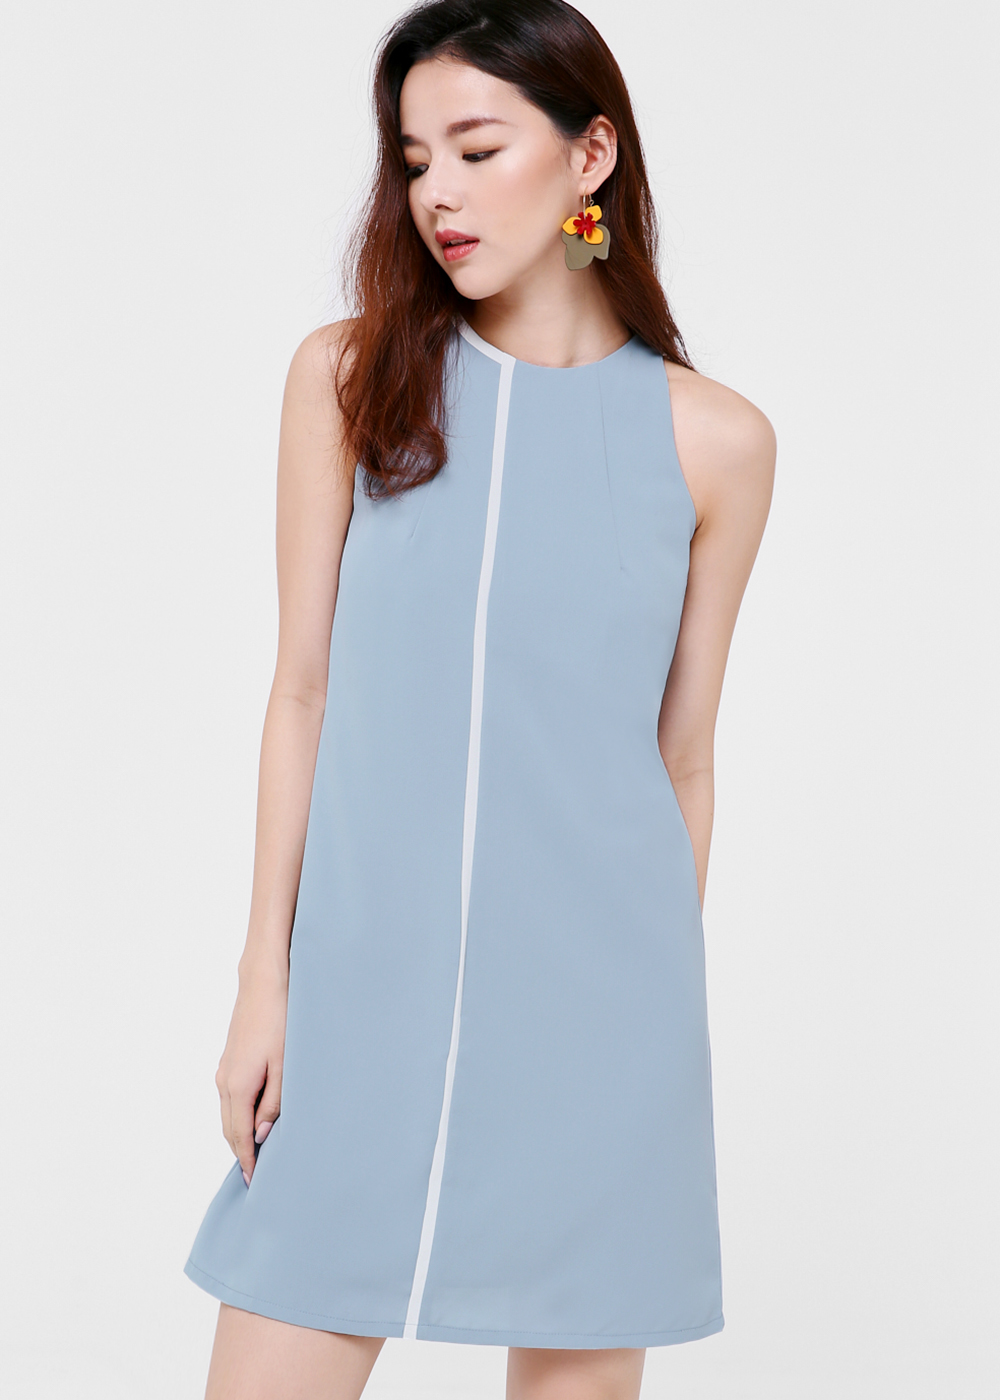 Coraline Collared Contrast Dress